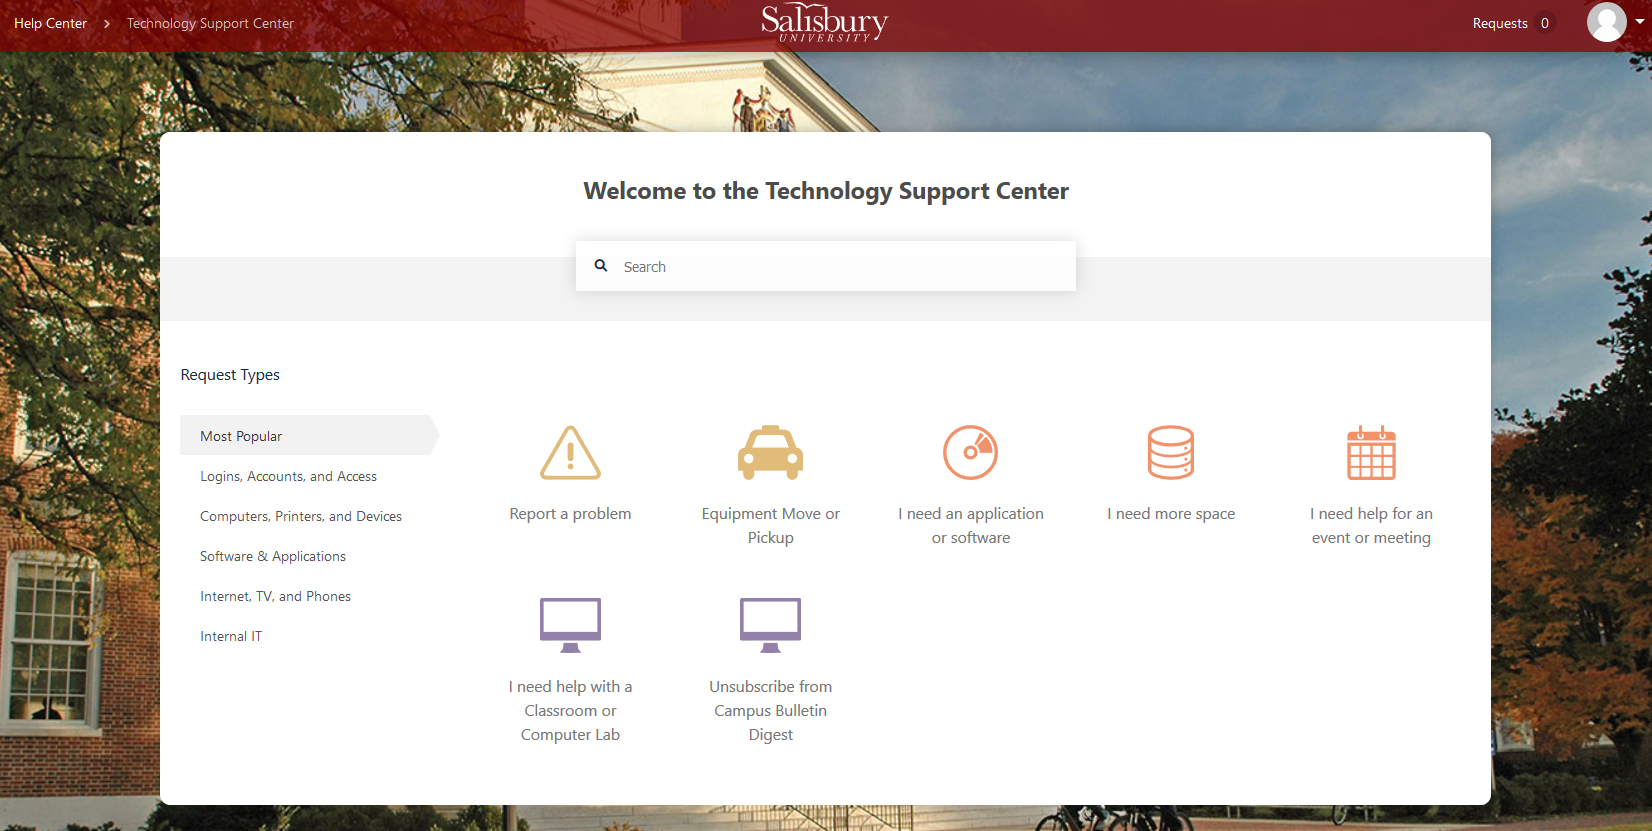 Support Center Home Page